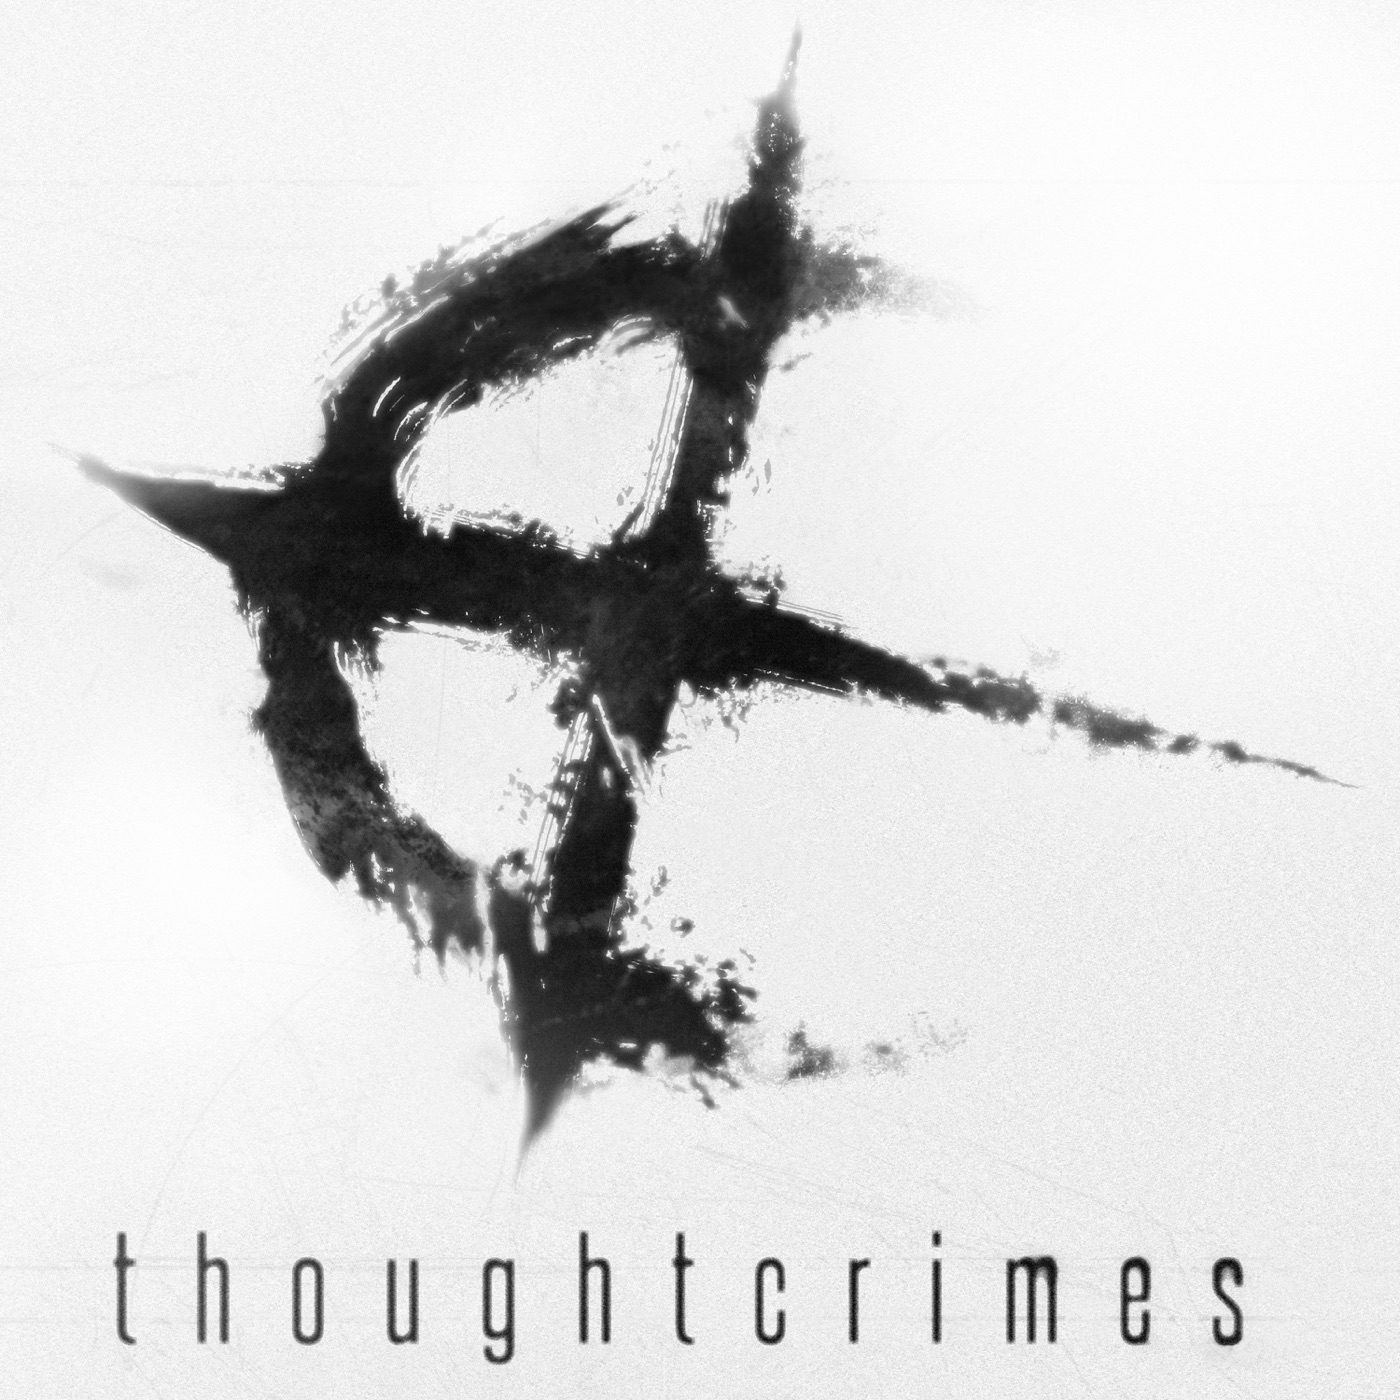 Thoughtcrimes - Punk Rock Guilt [single] (2019)